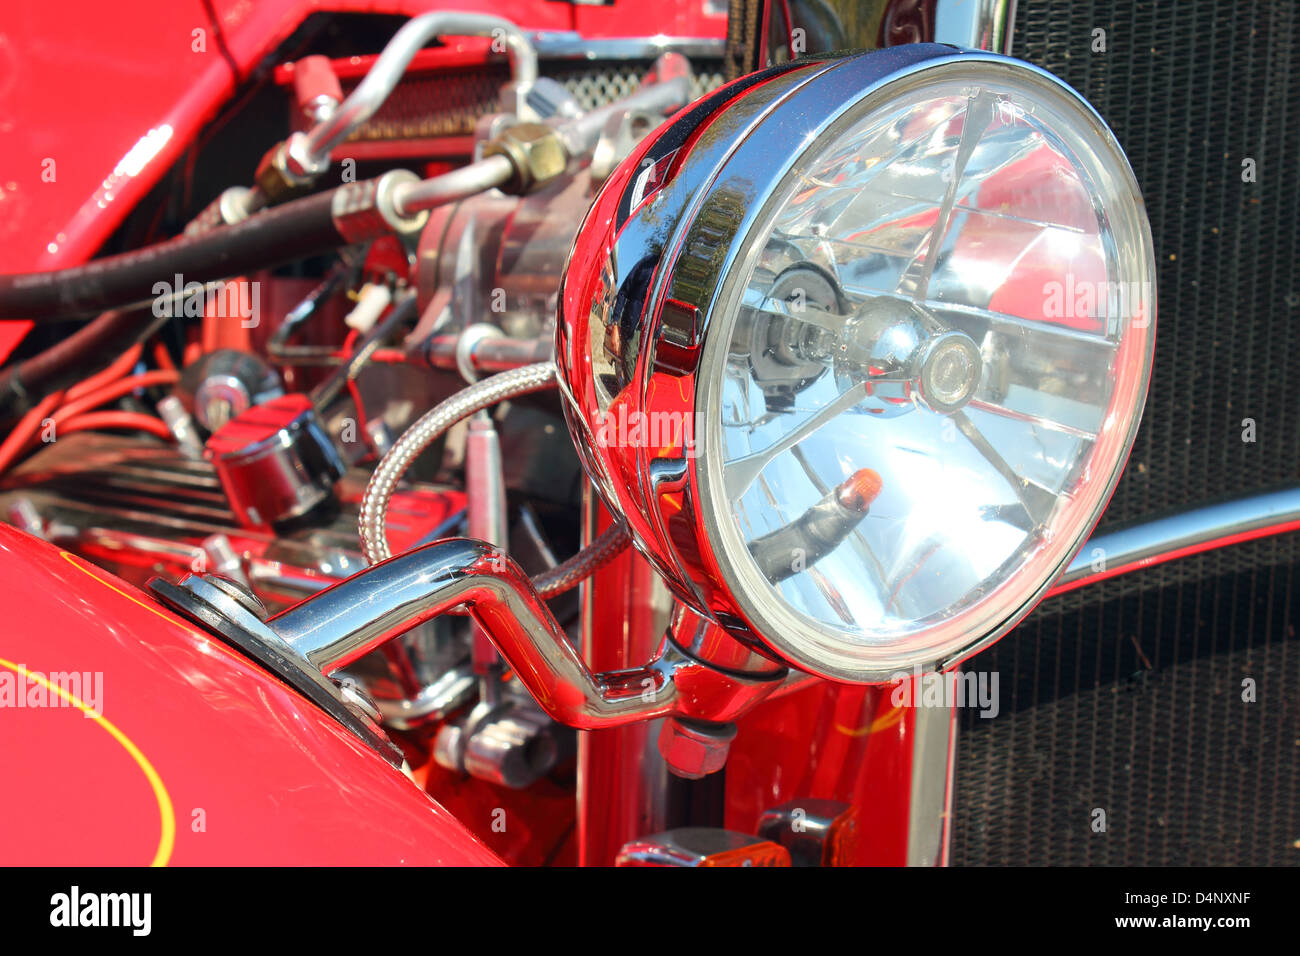 Headlamp on a classic hotrod at the Run to the Sun Hot Rod Show in Myrtle Beach, SC on March 15, 2013 - Stock Image